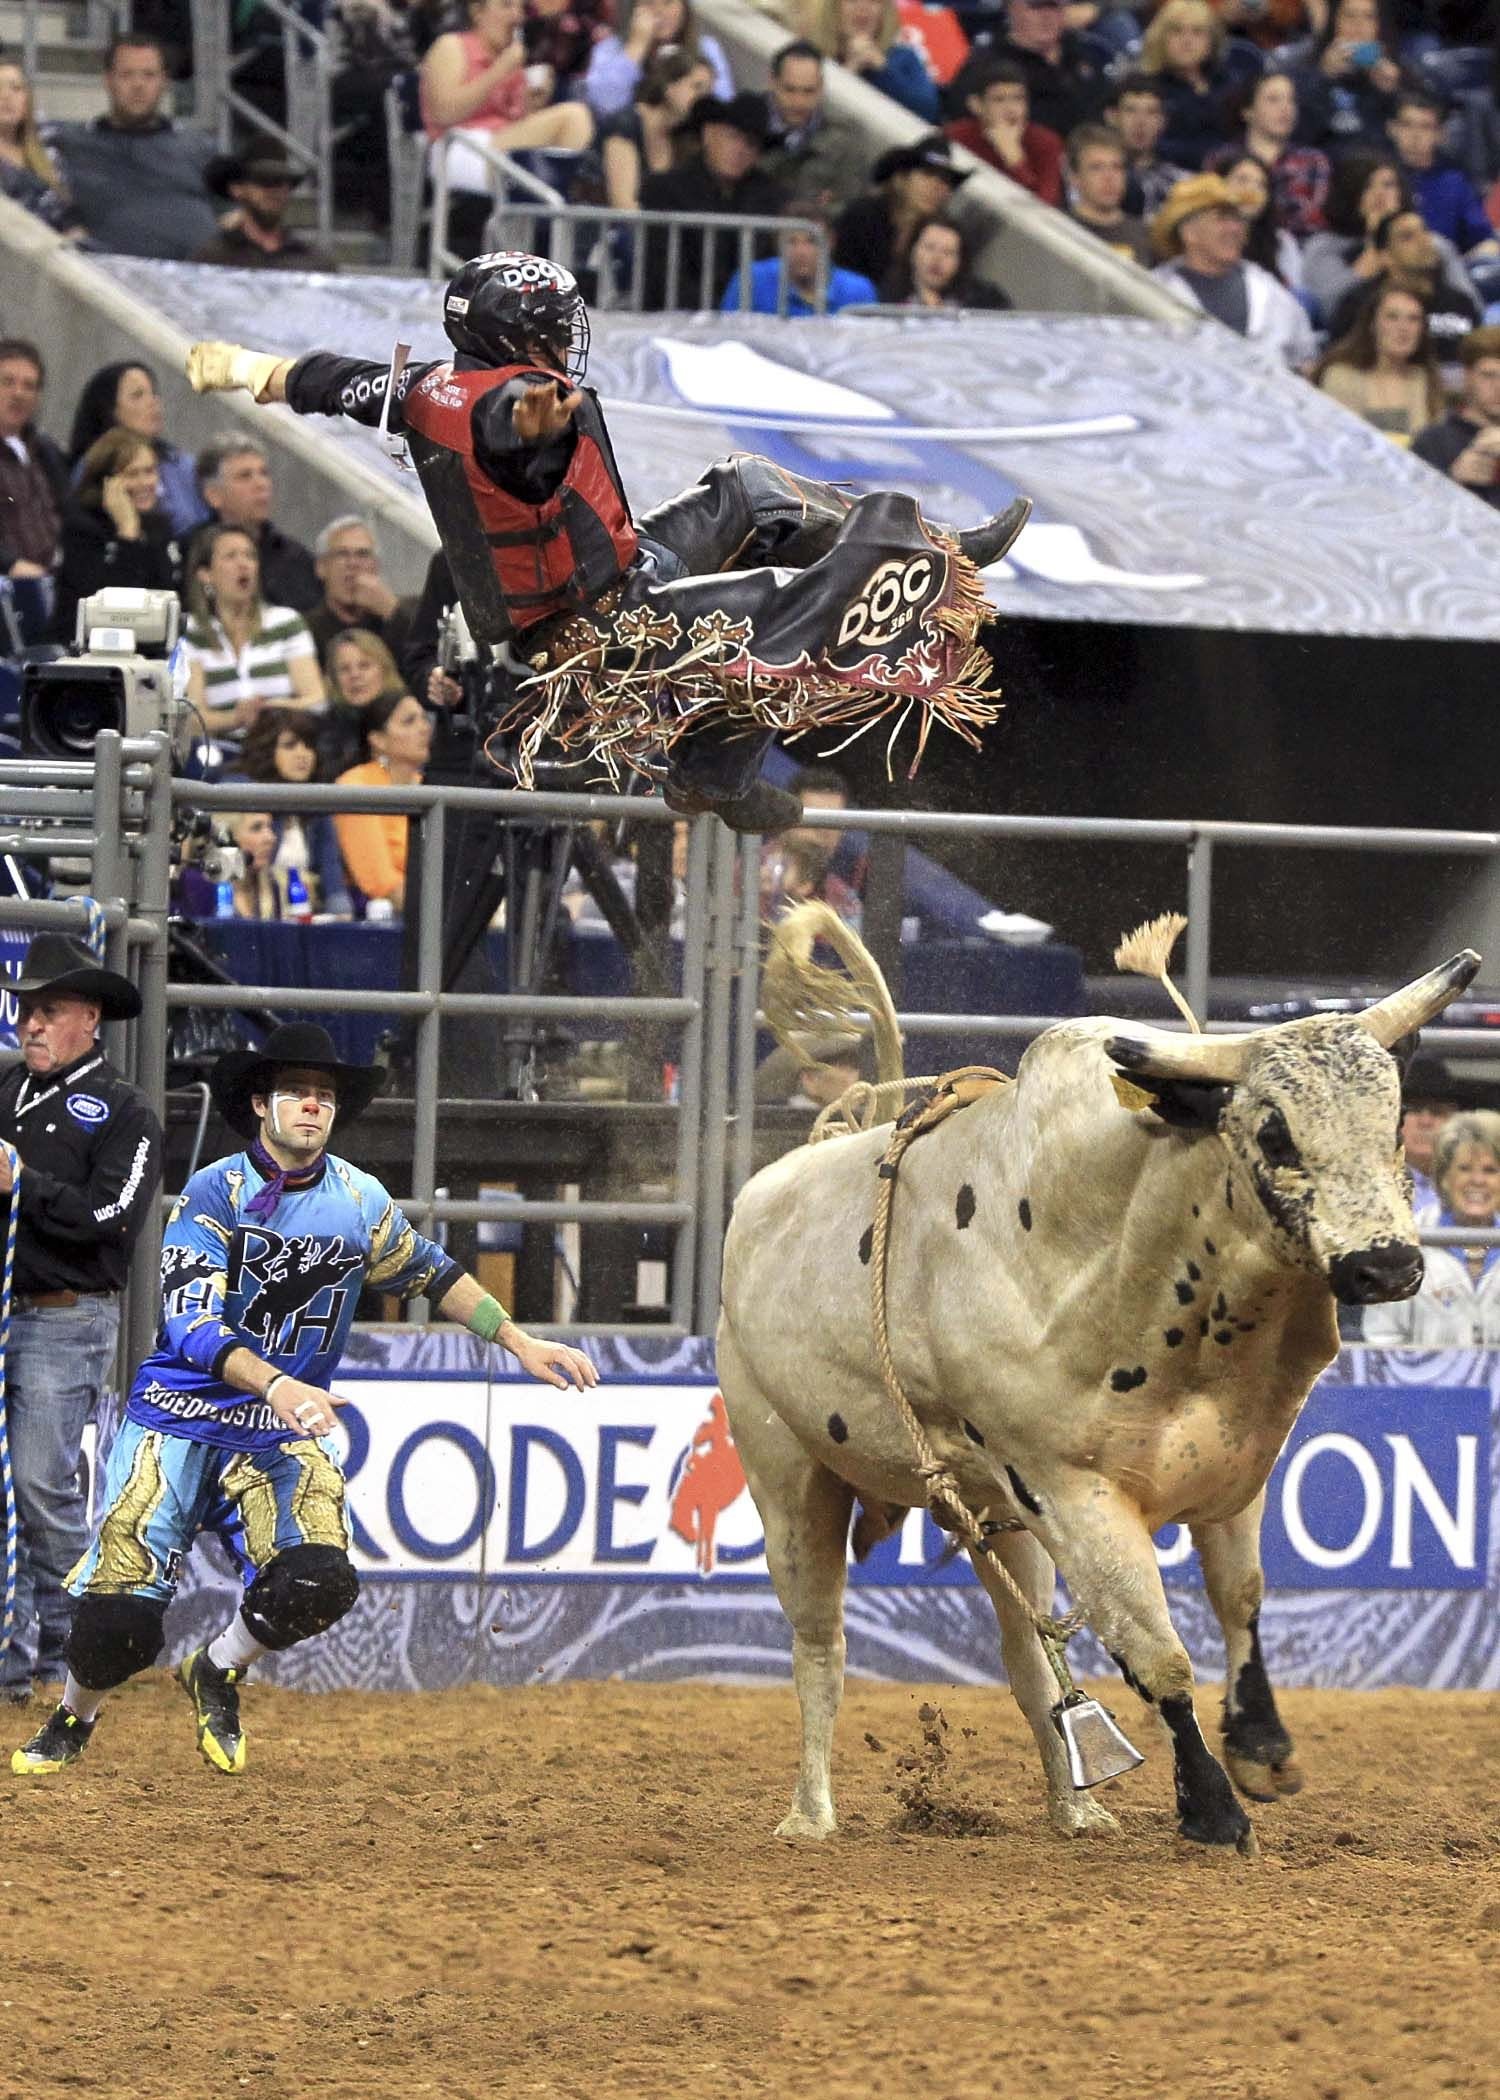 Rodeo's and PBR!!! ( PROFESSIONAL BULL RIDING, not the